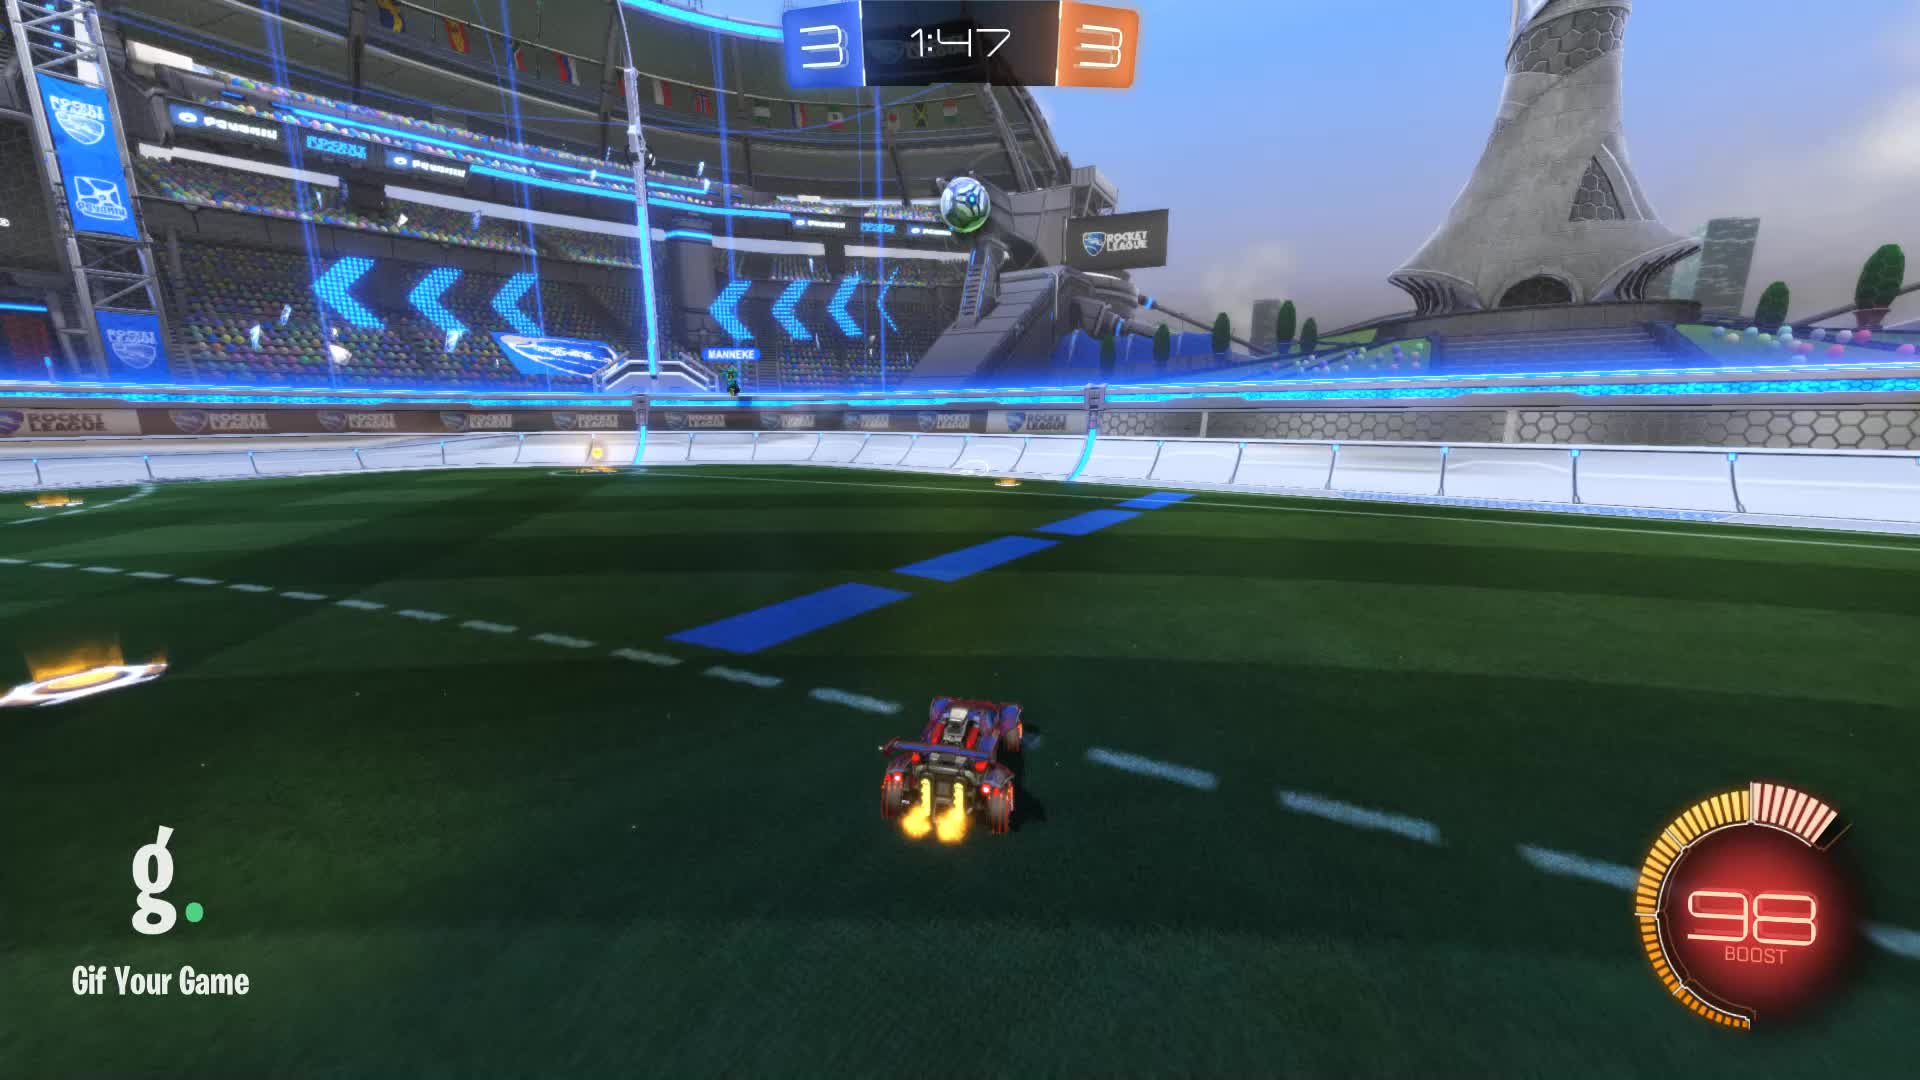 Demo, Gif Your Game, GifYourGame, Rocket League, RocketLeague, Timper [NL], Demo 3: Timper [NL] GIFs